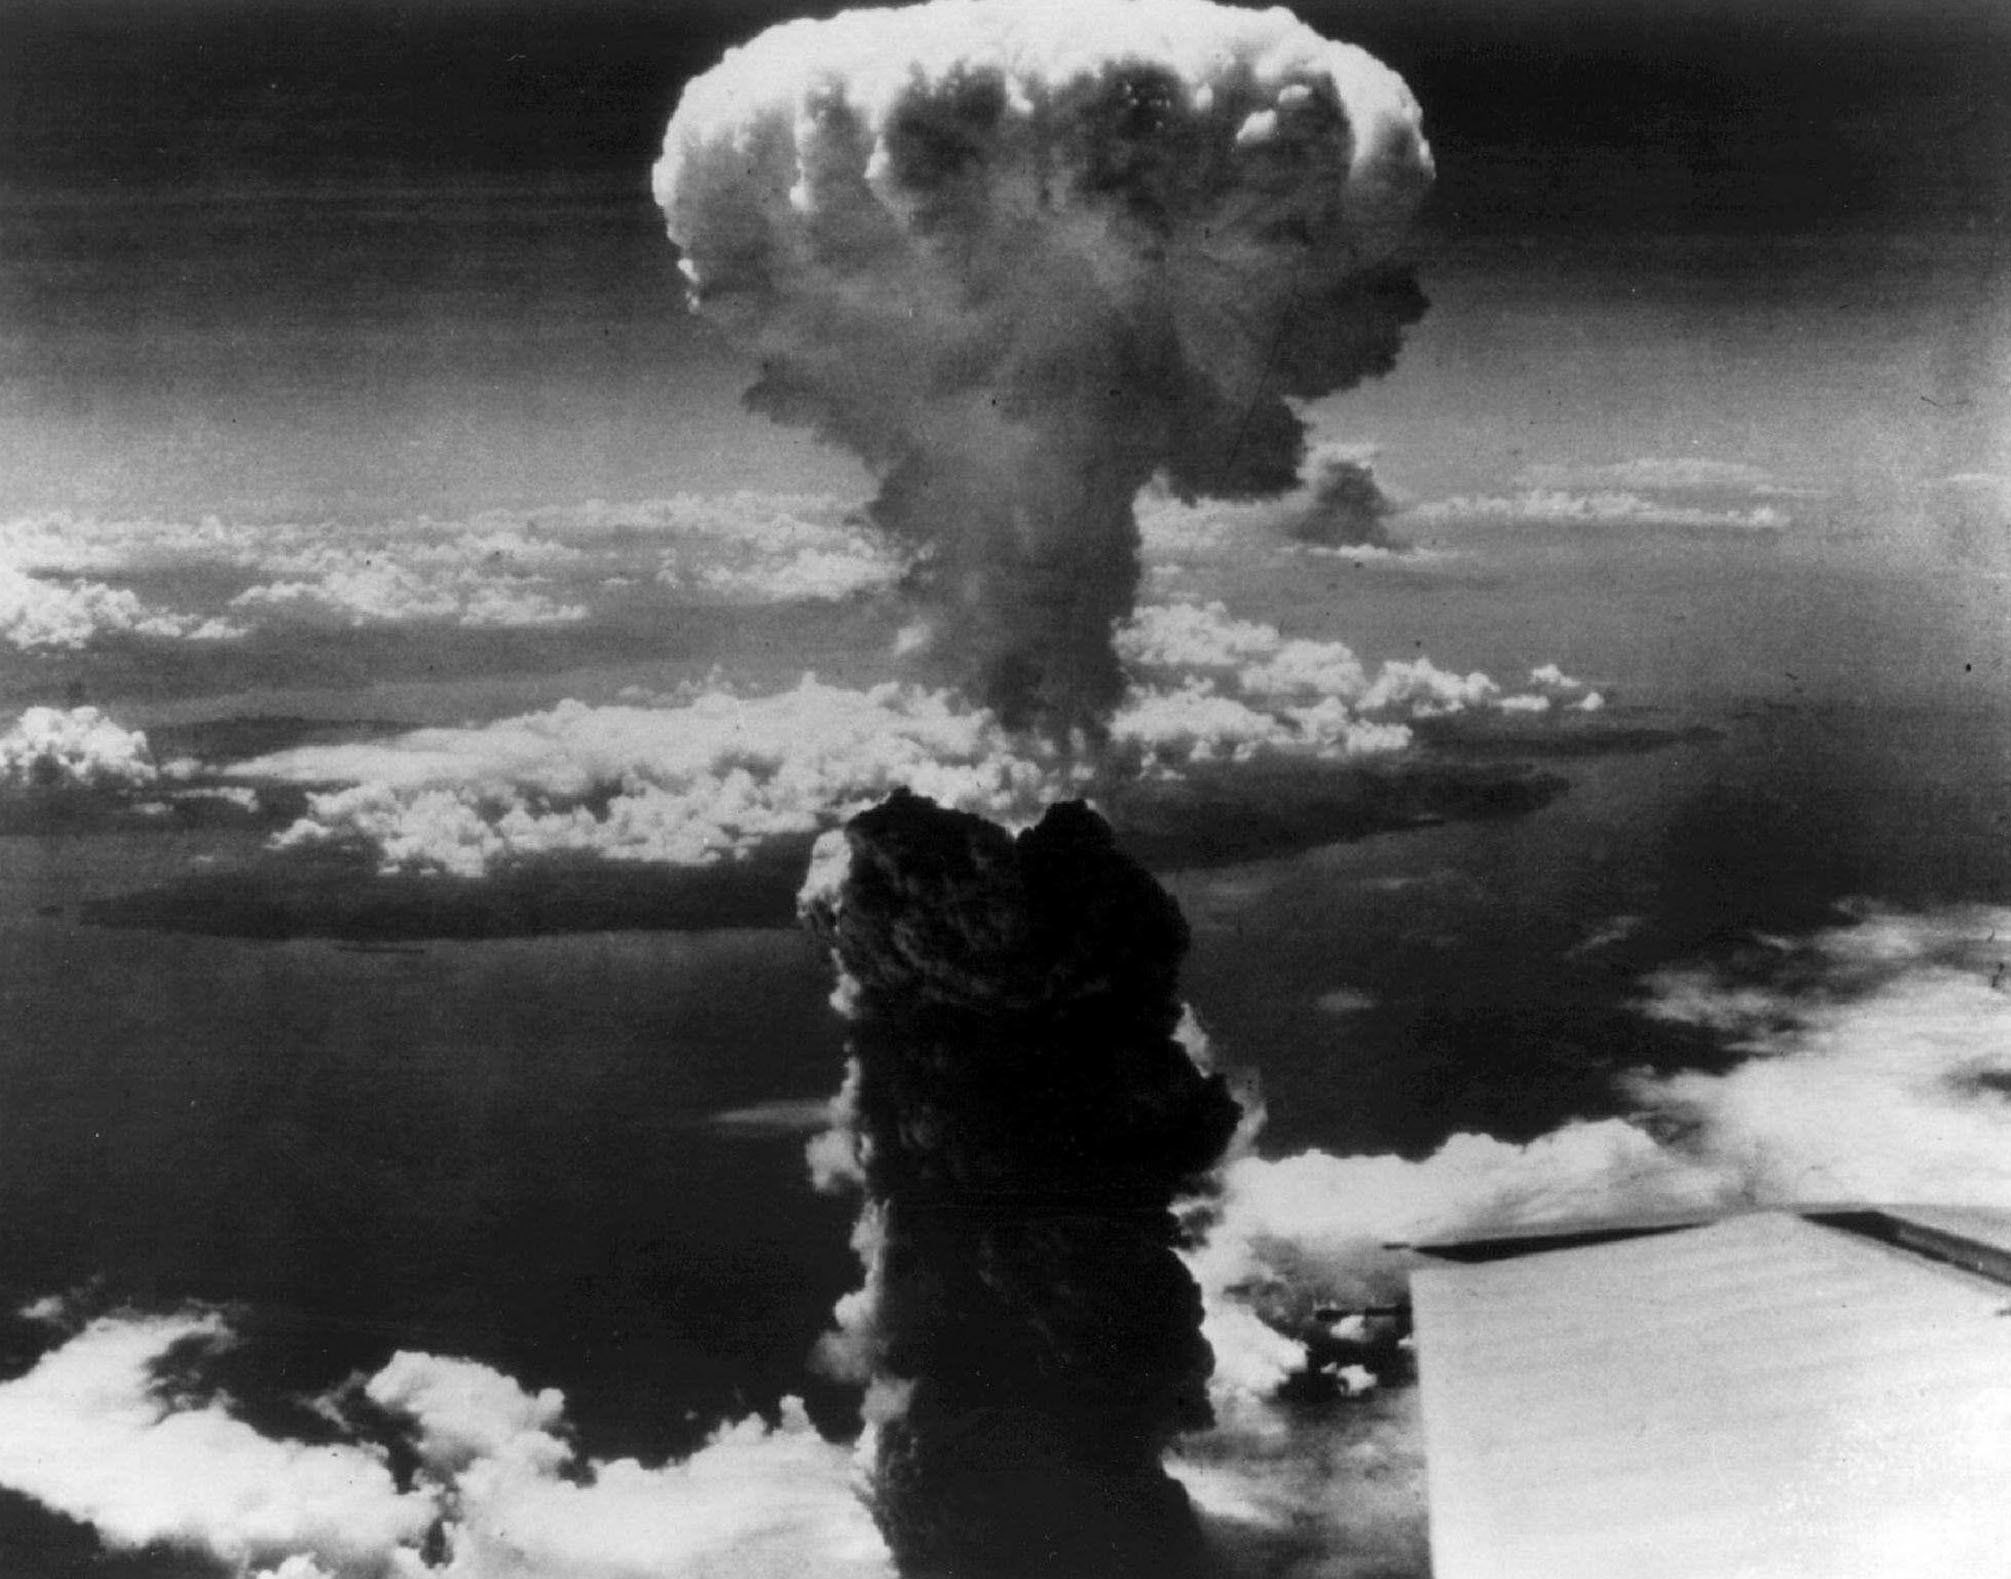 Smoke billows over Nagasaki, Japan after the atomic bomb was dropped on the city. August 9,